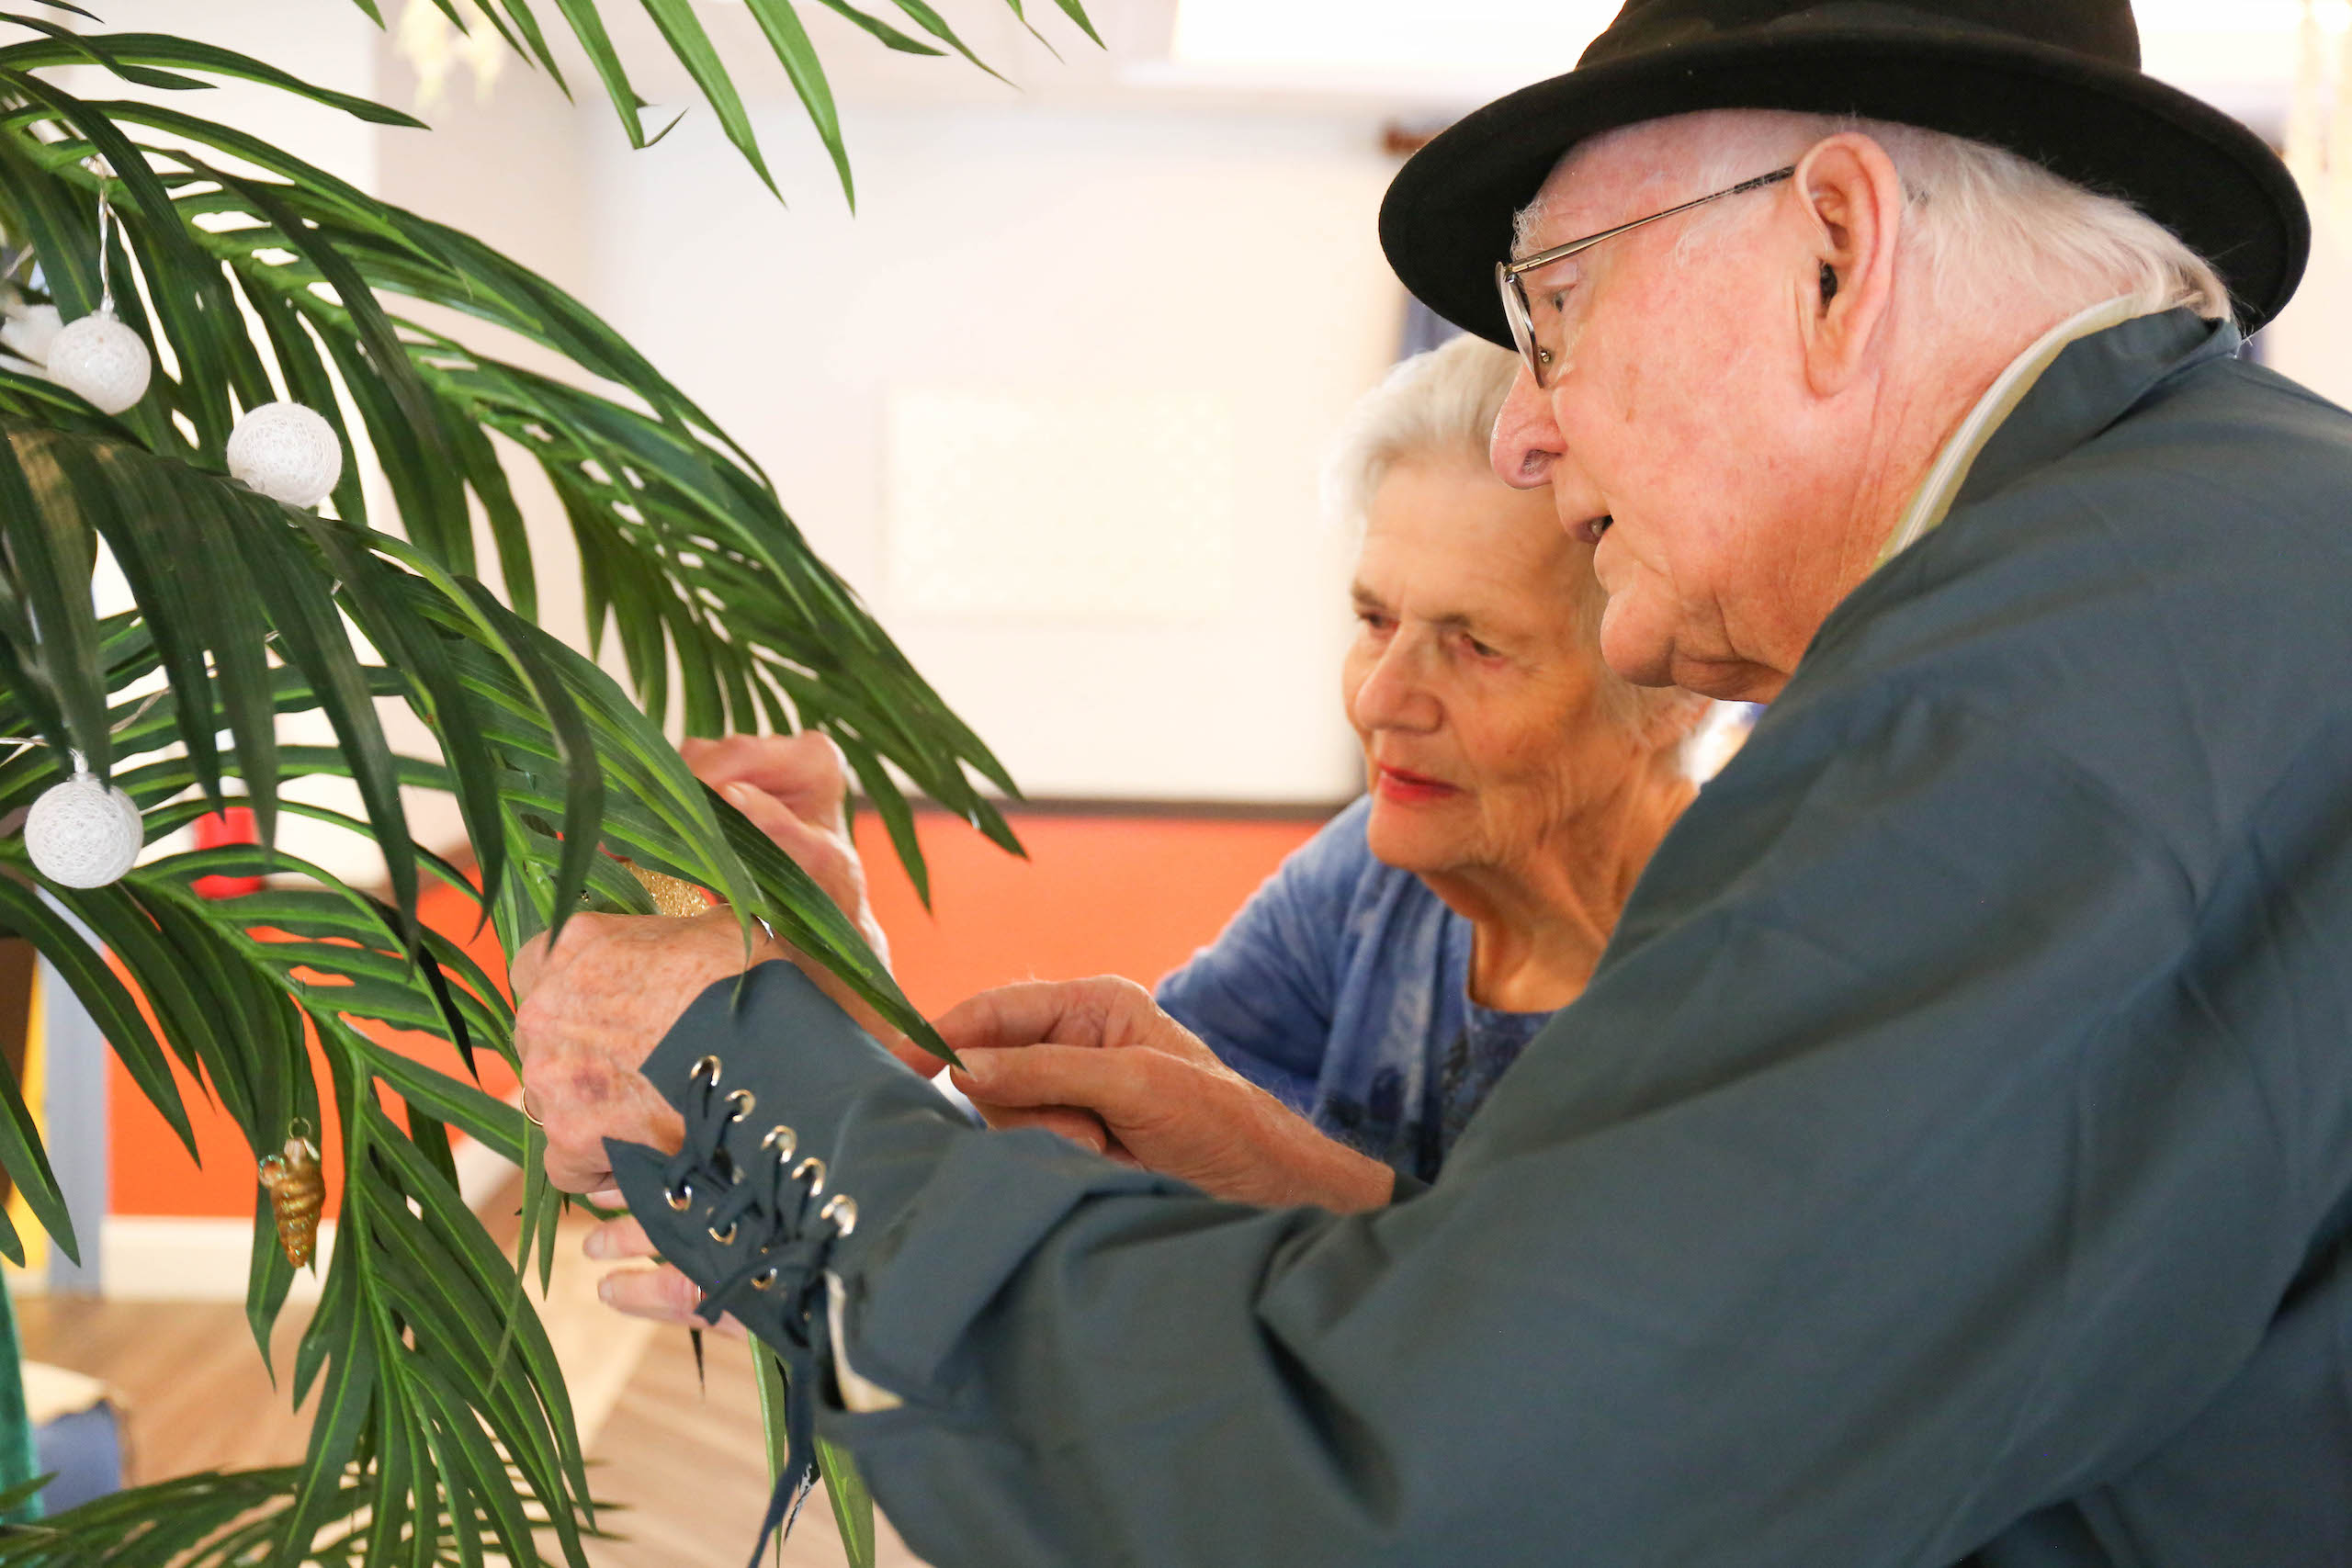 Dementia Care at Home: How to Connect and Engage